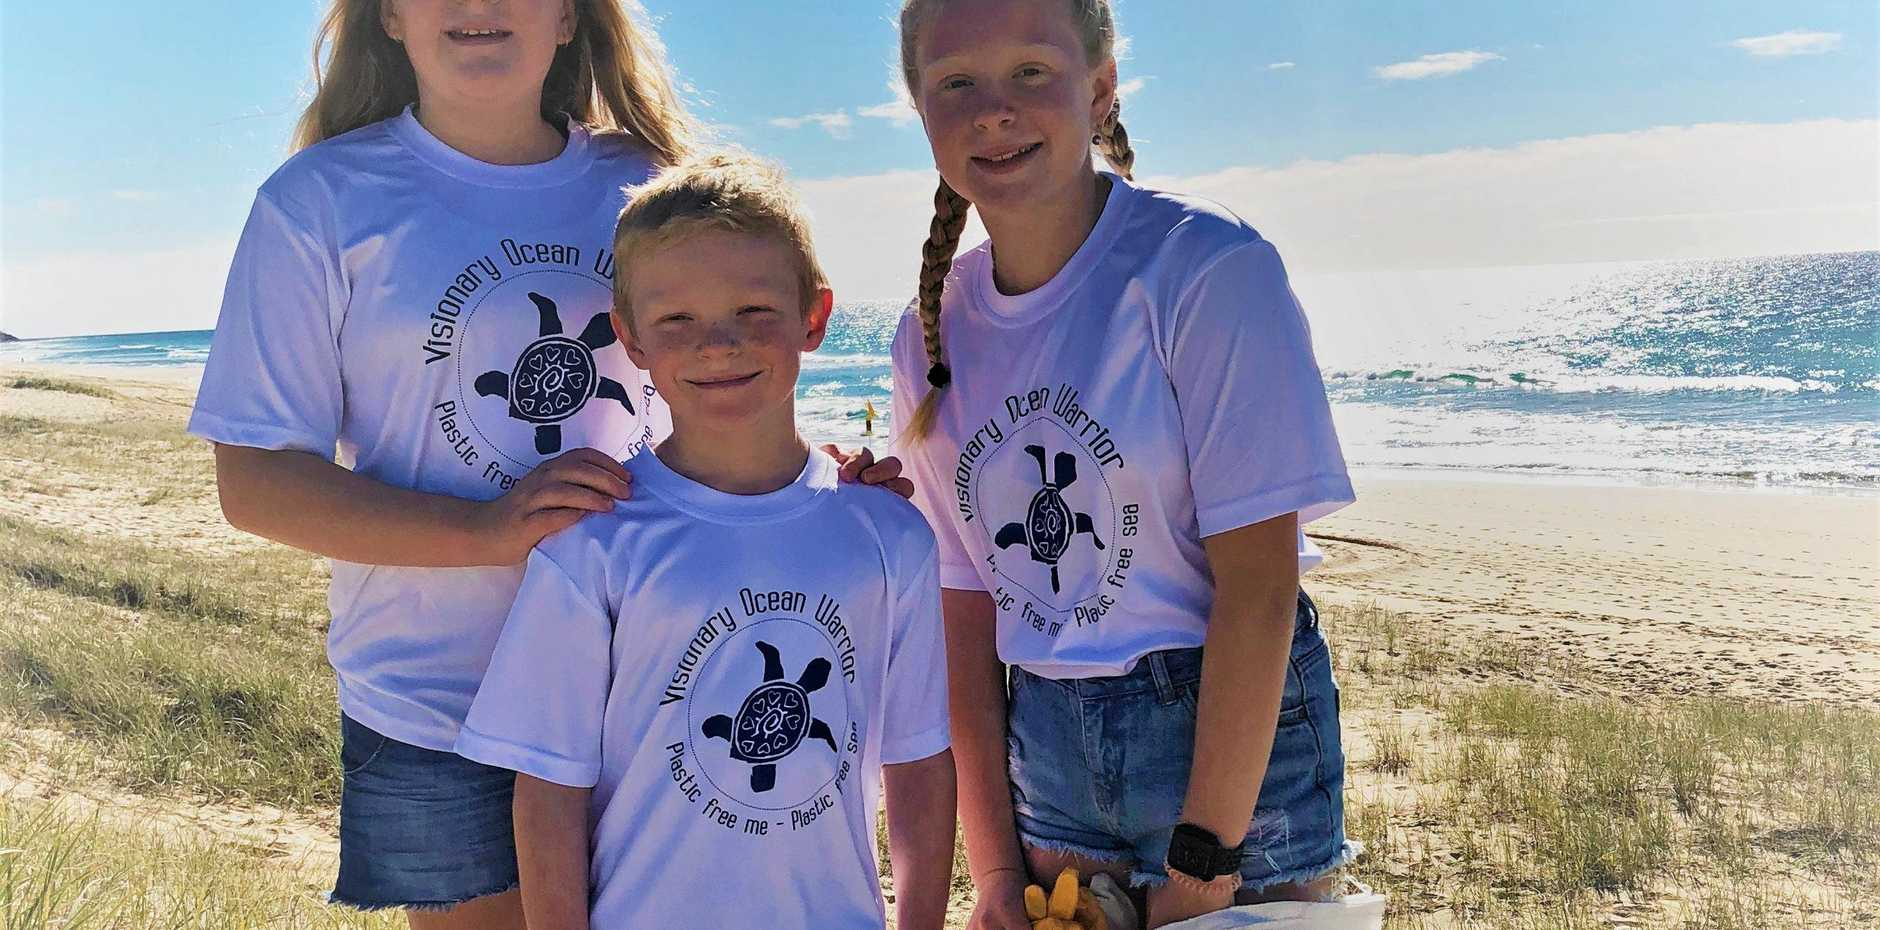 ONE PIECE AT A TIME: Millie, Poppy and Jack cleaning up our beaches.